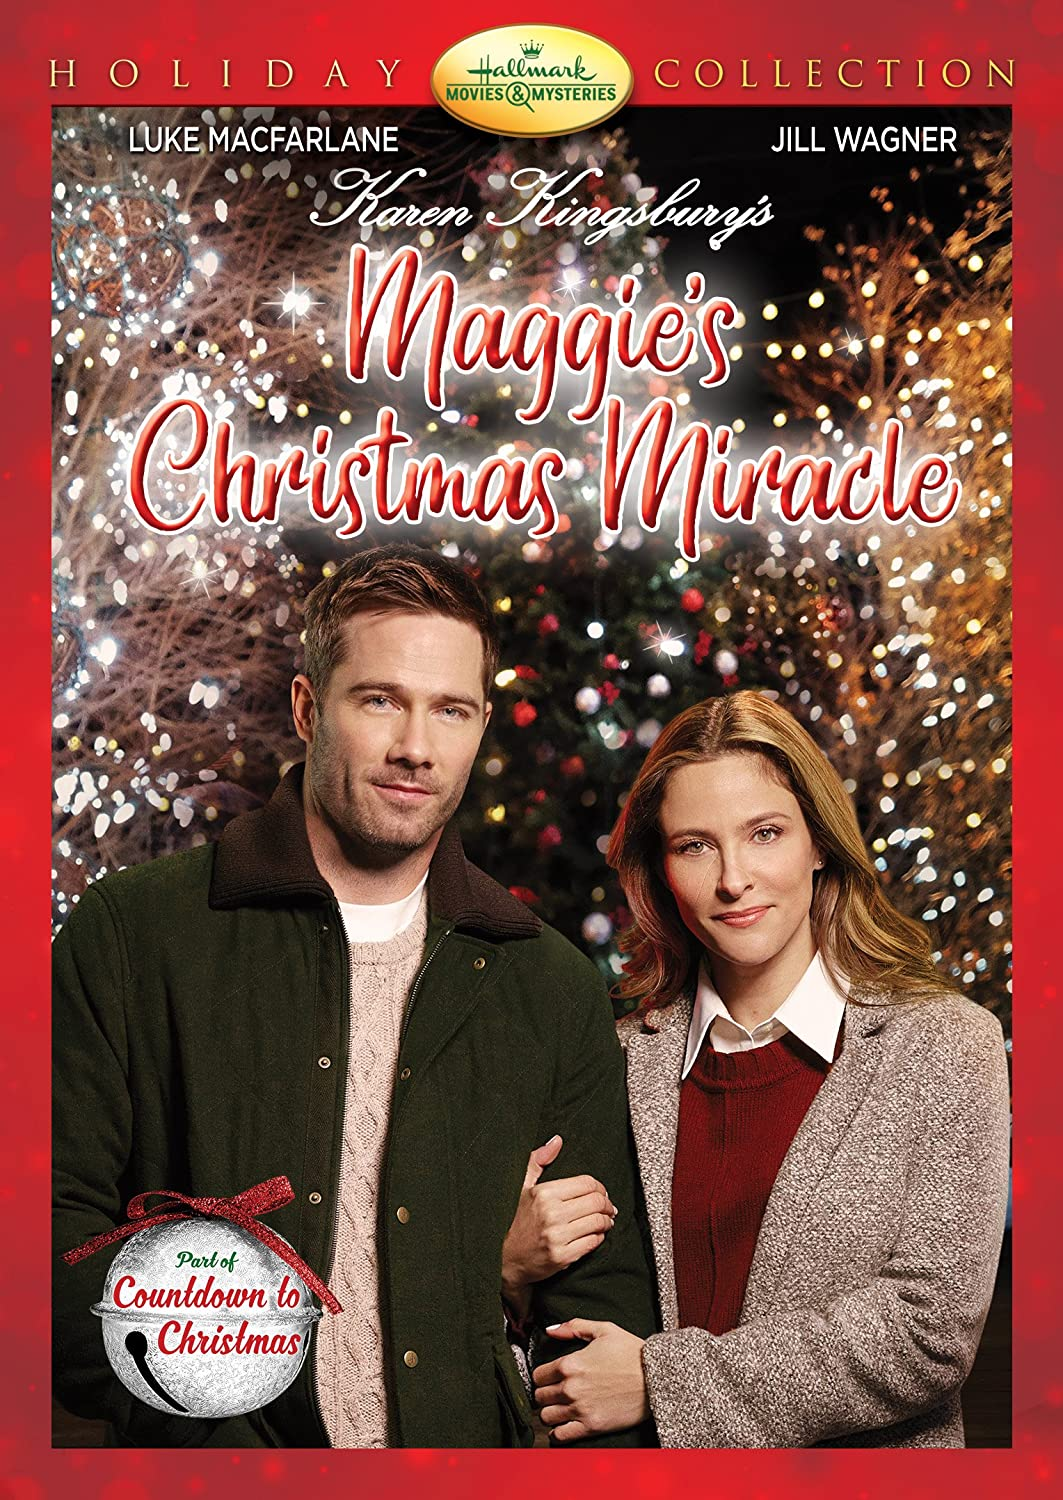 Karen Kingsburys Maggies Christmas Miracle Cast.Amazon Com Karen Kingsbury S Maggie S Christmas Miracle